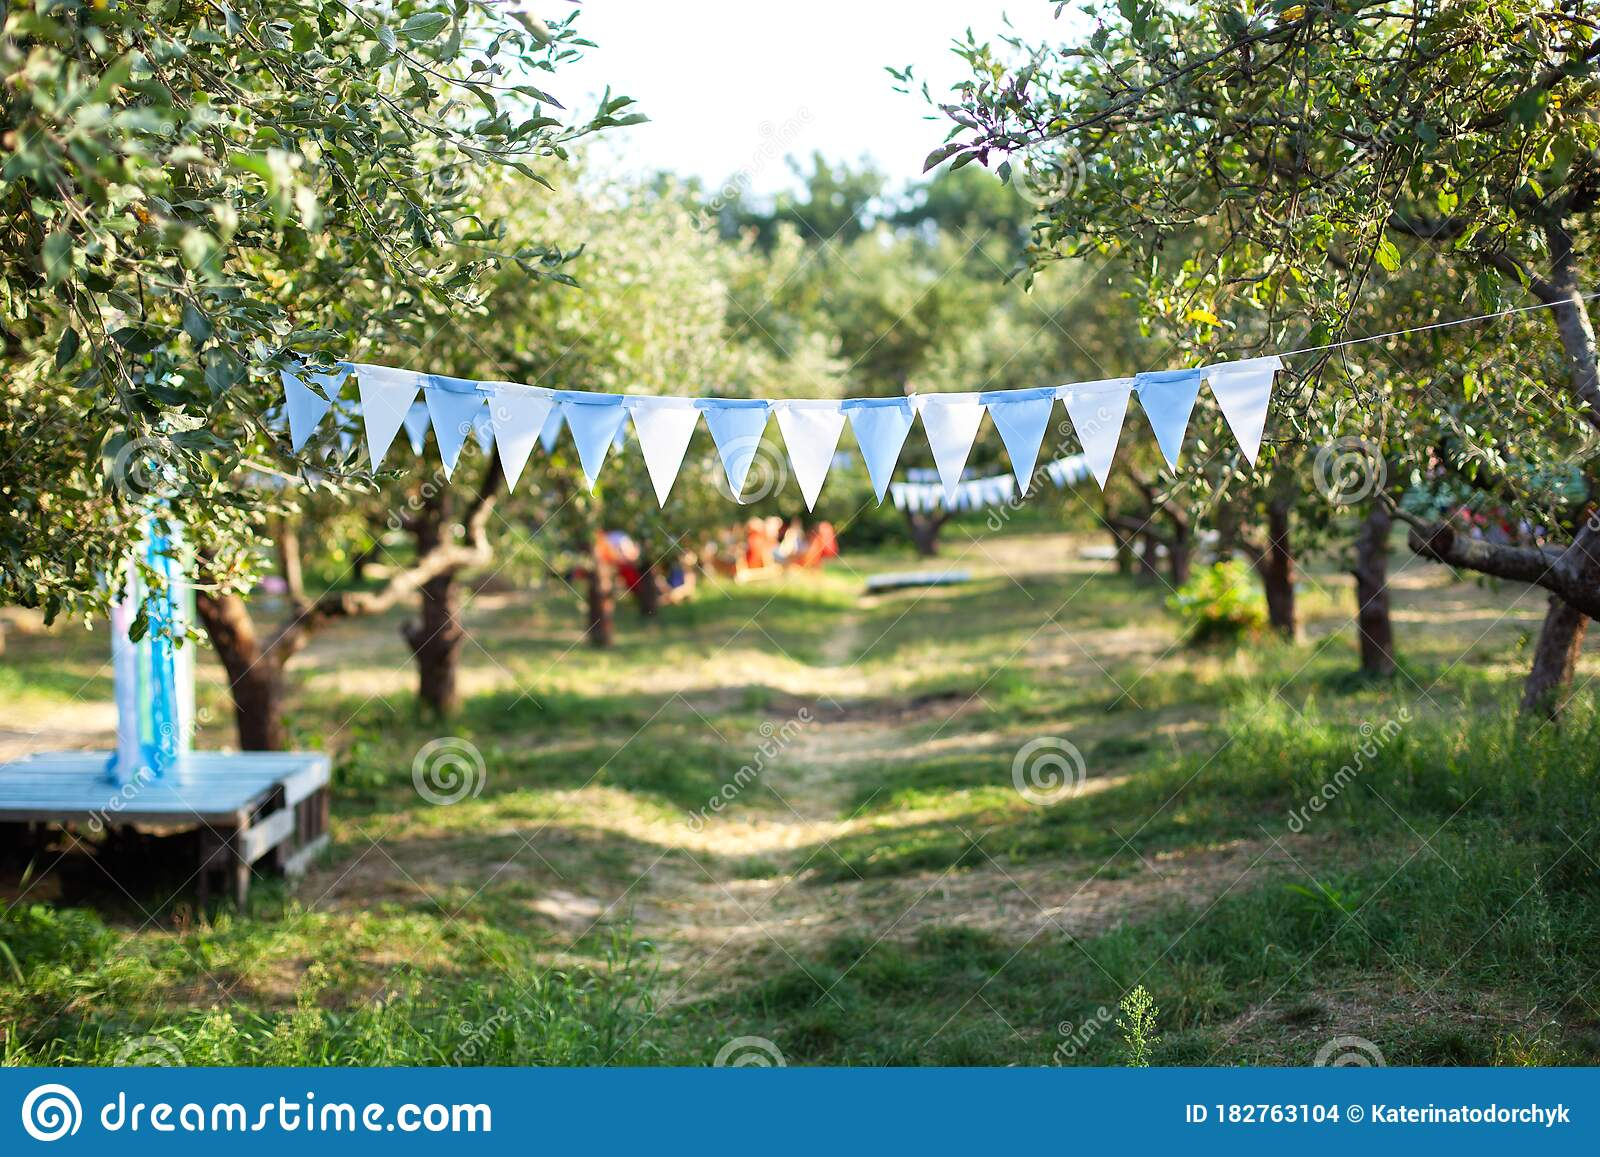 Flags Birthday Decorations Hanging On Tree Branch In Garden Colorful Bunting Flags Hanging In Park Garden Party Decoration Wedd Stock Photo Image Of Event Flags 182763104